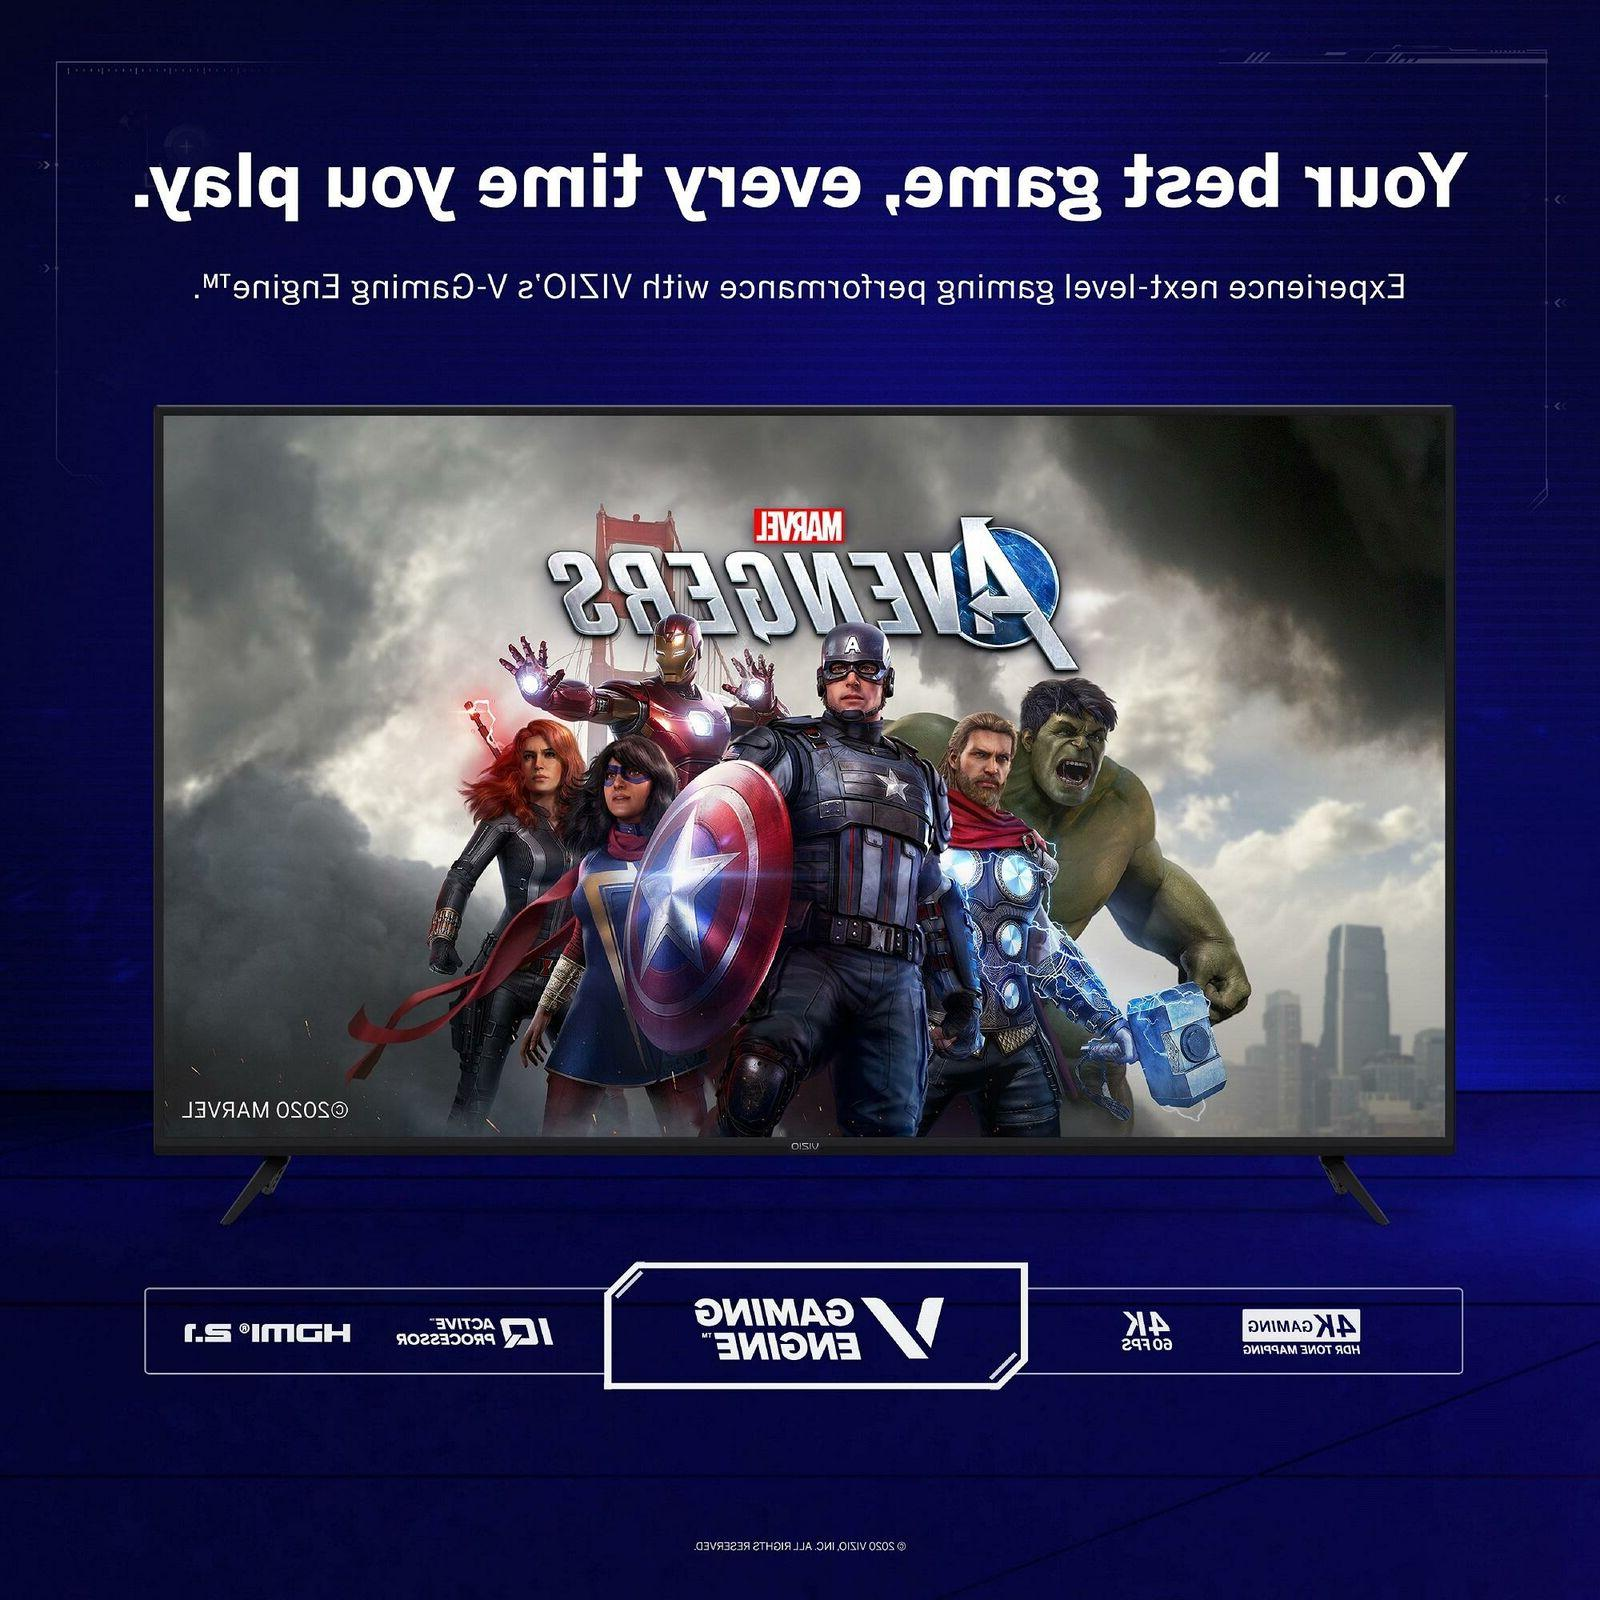 VIZIO UHD LED TV M Series HDMI HD V Gaming